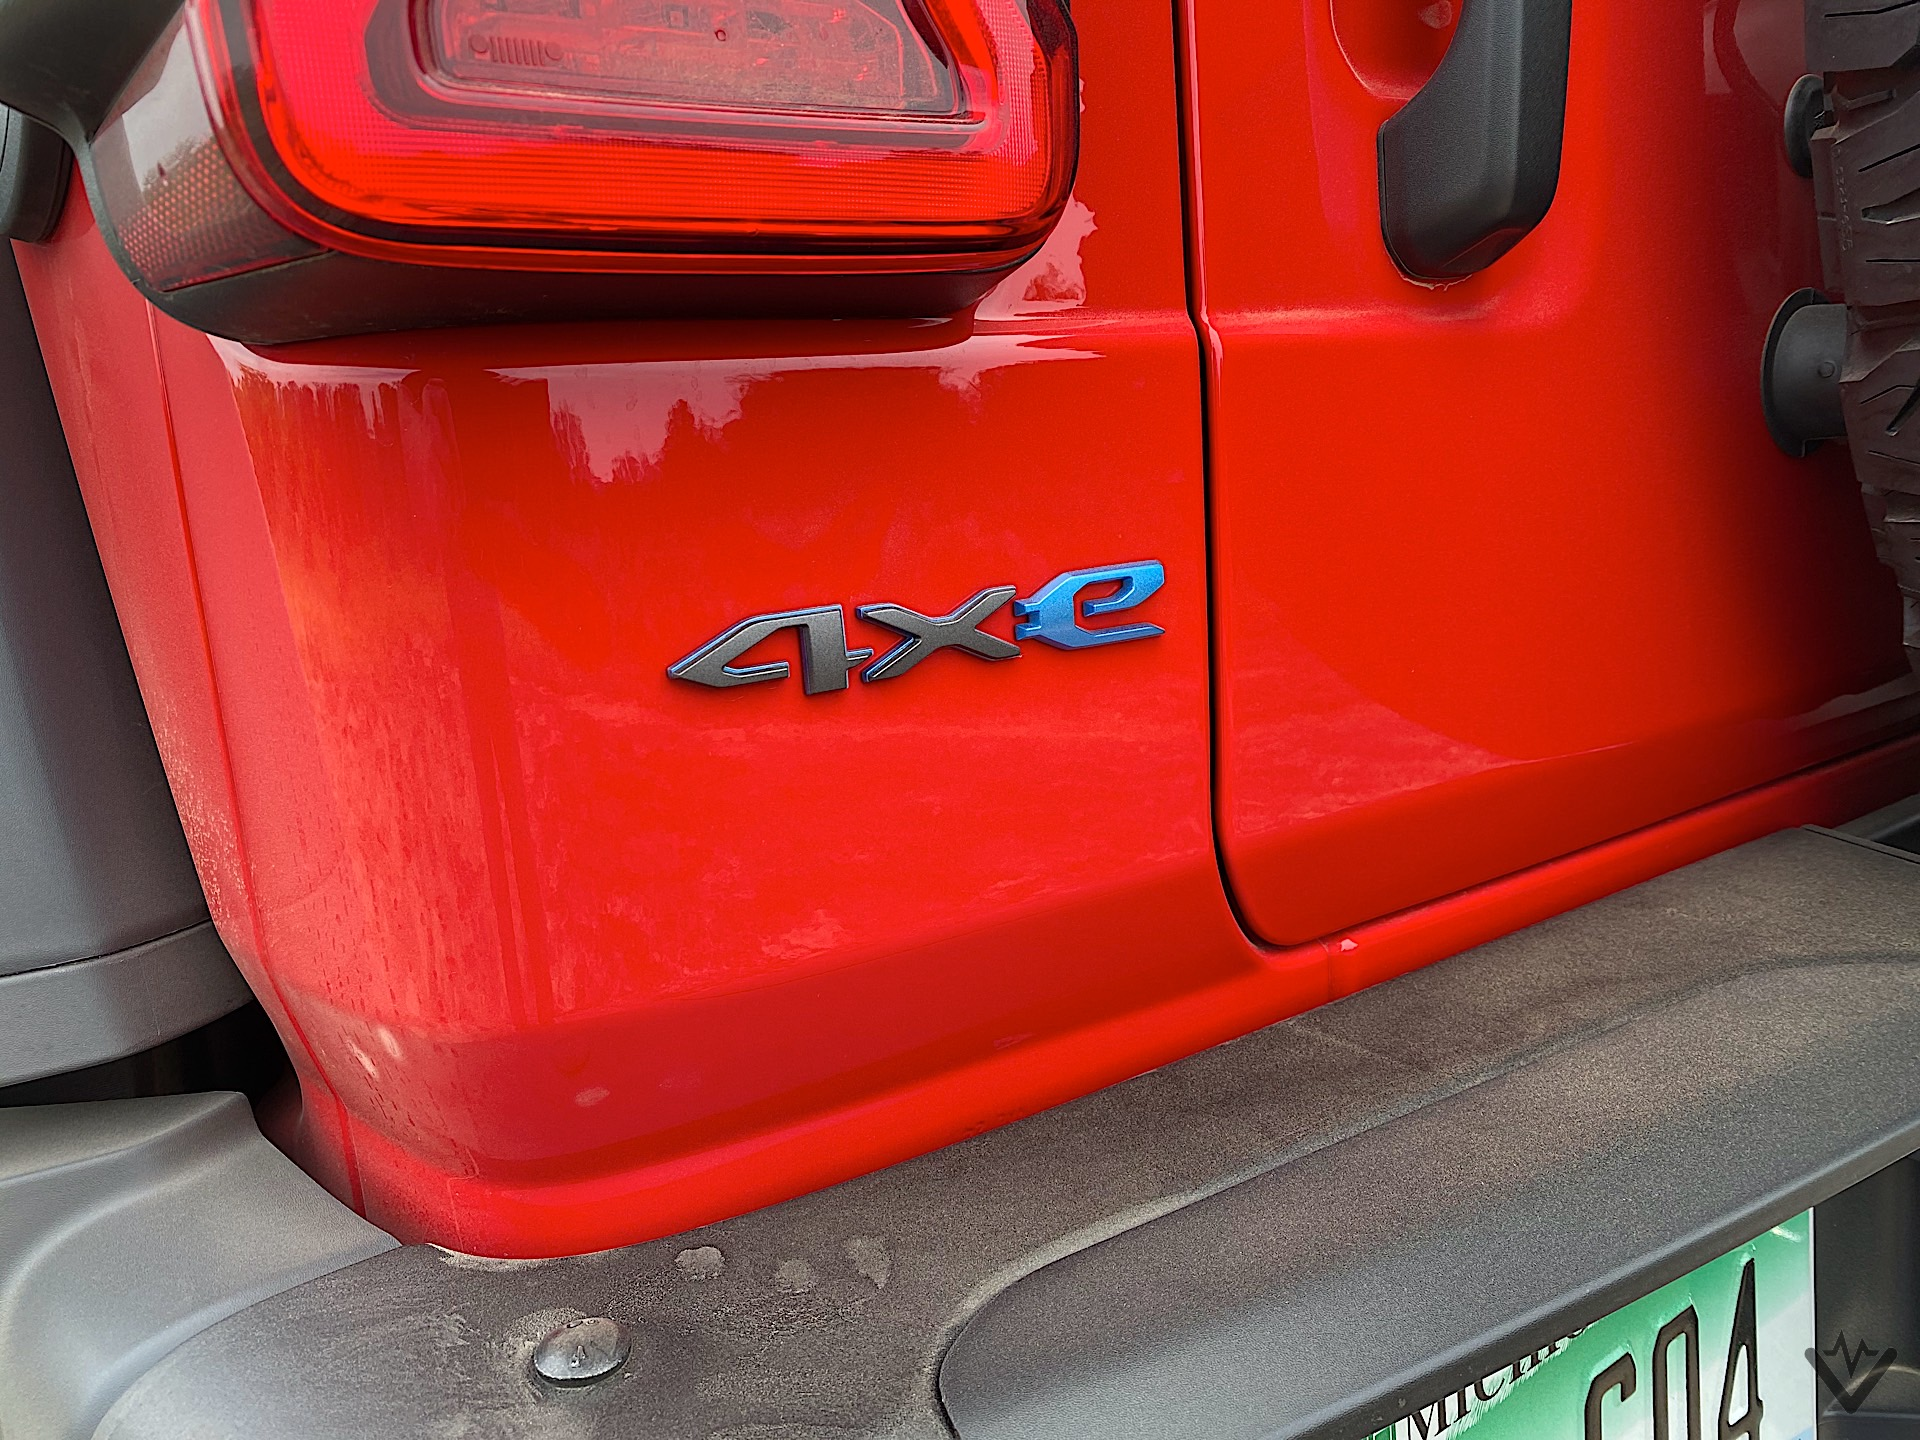 2021 Jeep Wrangler 4xe first drive IMG 3155